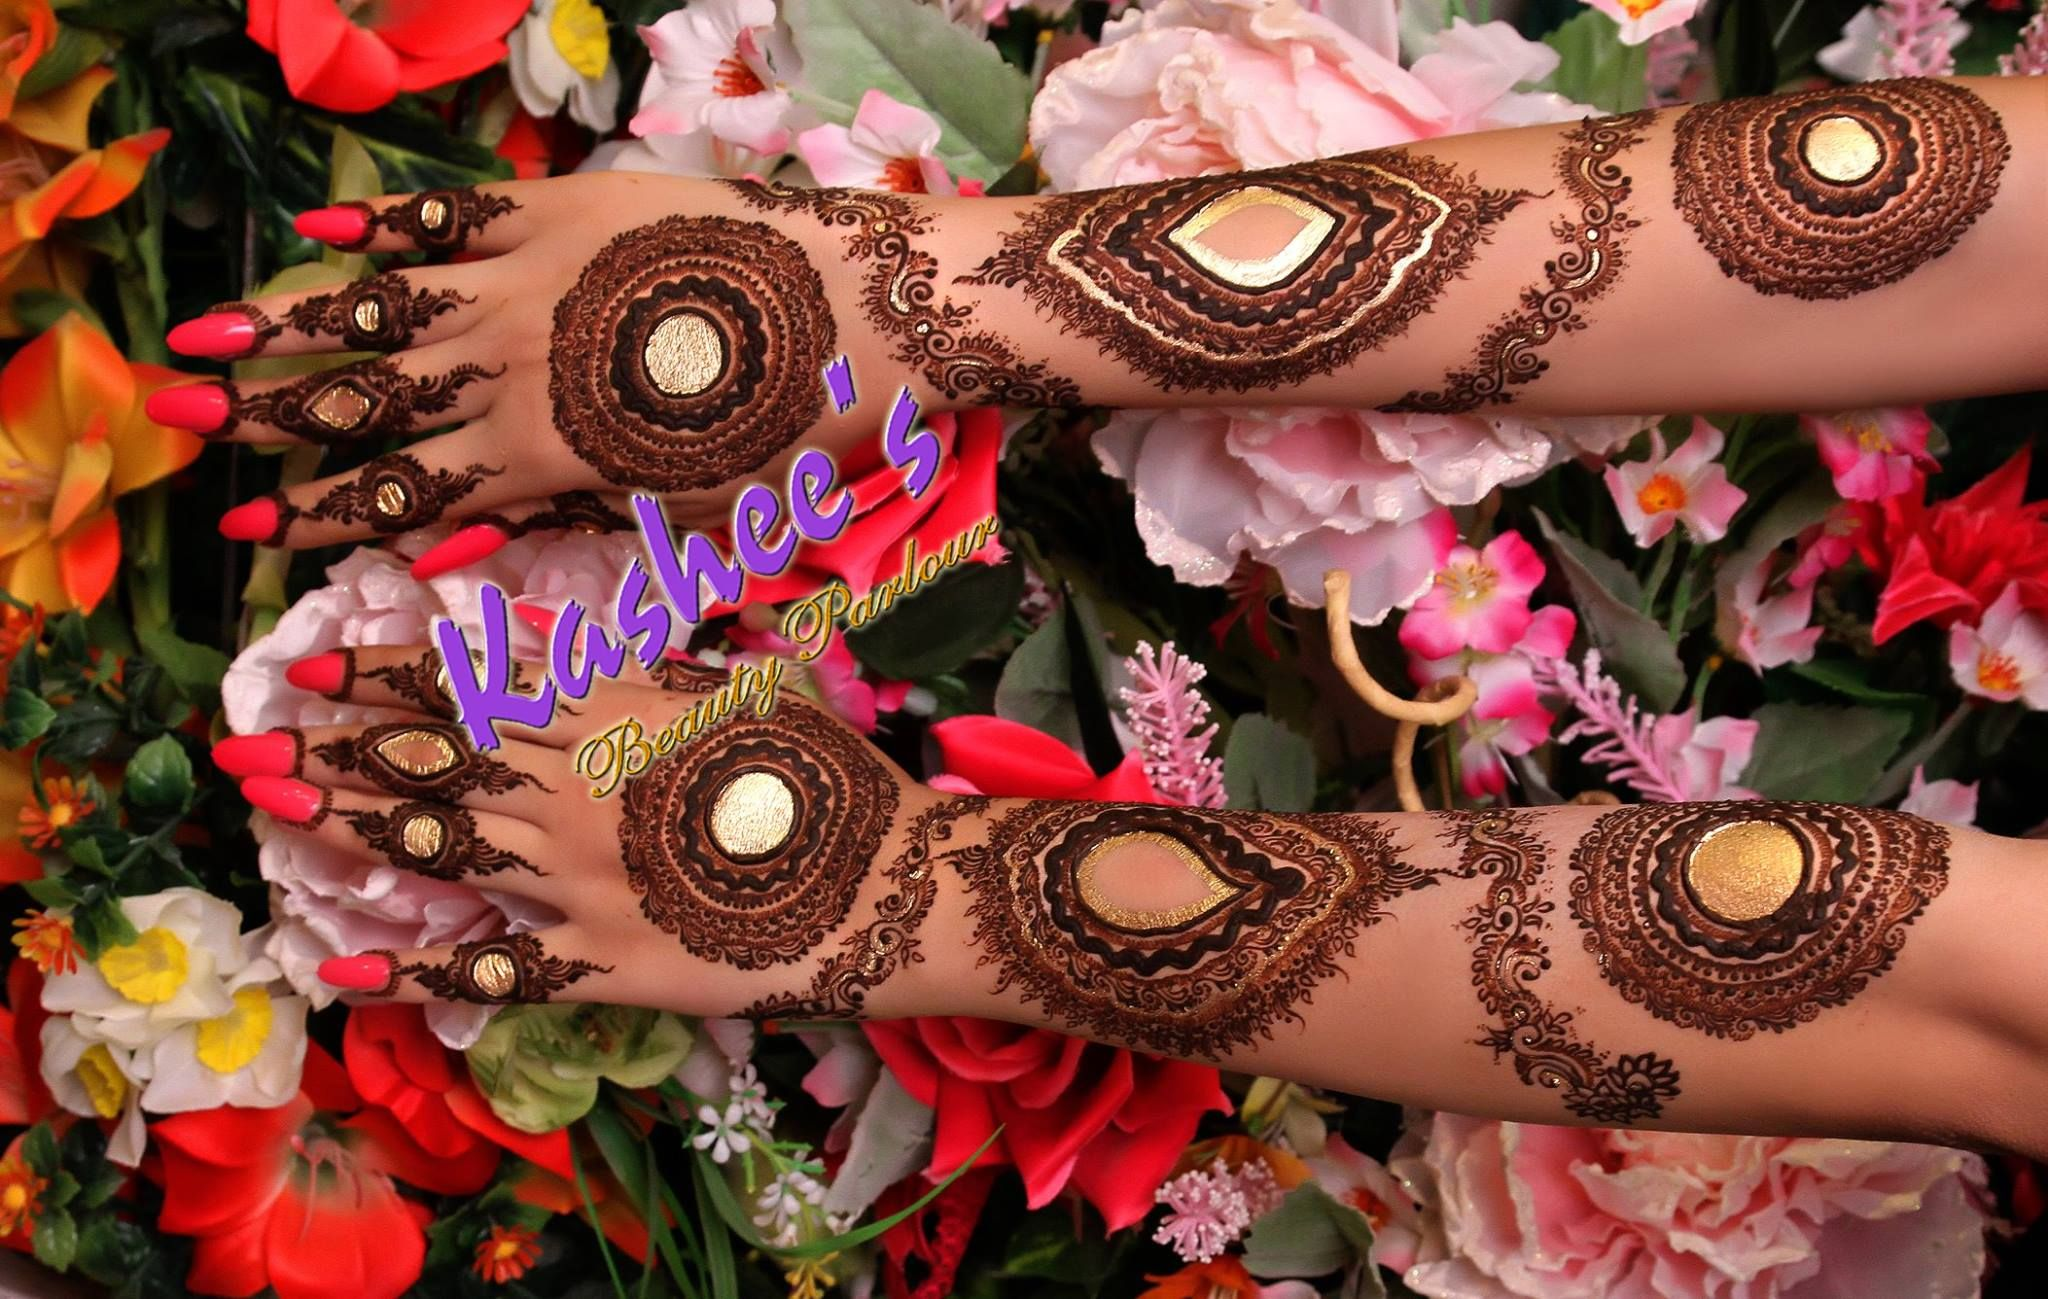 Mehndi design 2017 ki - Beautiful Kashee S Mehndi Designs Collection 2016 2017 For Girls Mehndi Designs Pinterest Mehndi Designs Mehndi And Beautiful Mehndi Design